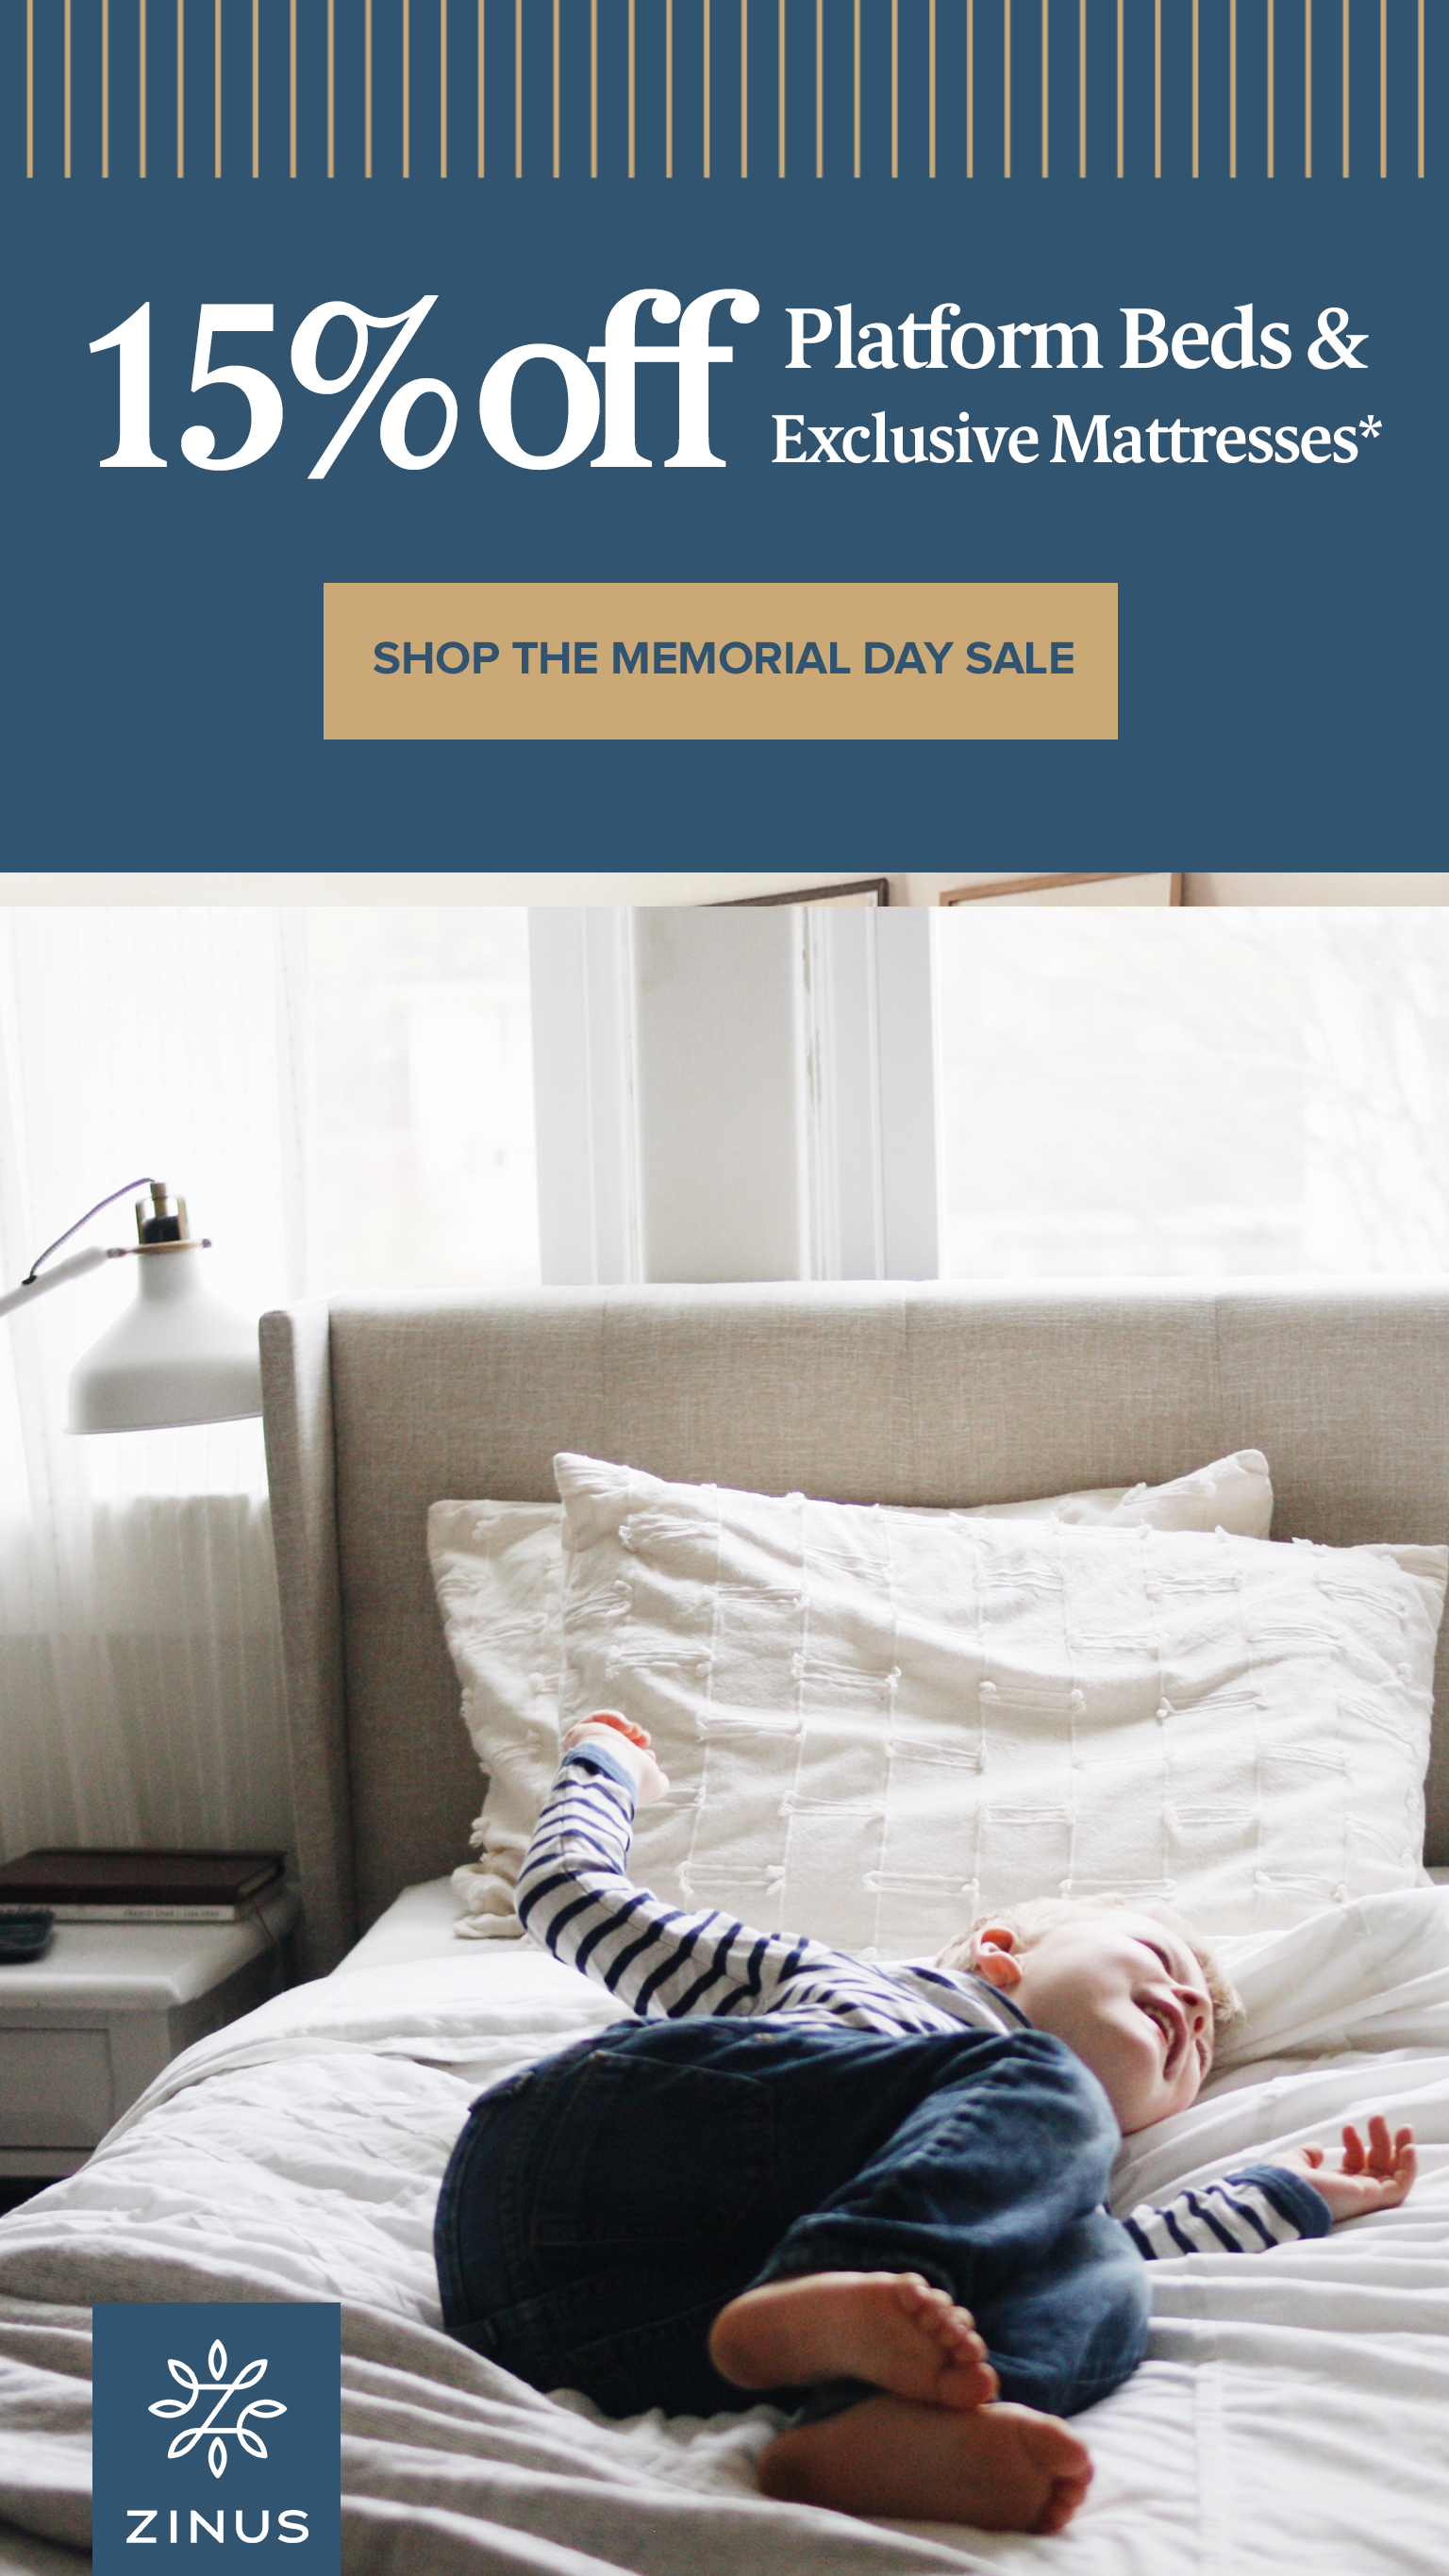 Zinus Invites You To Our Memorial Day Sale We Re Serving Up 15